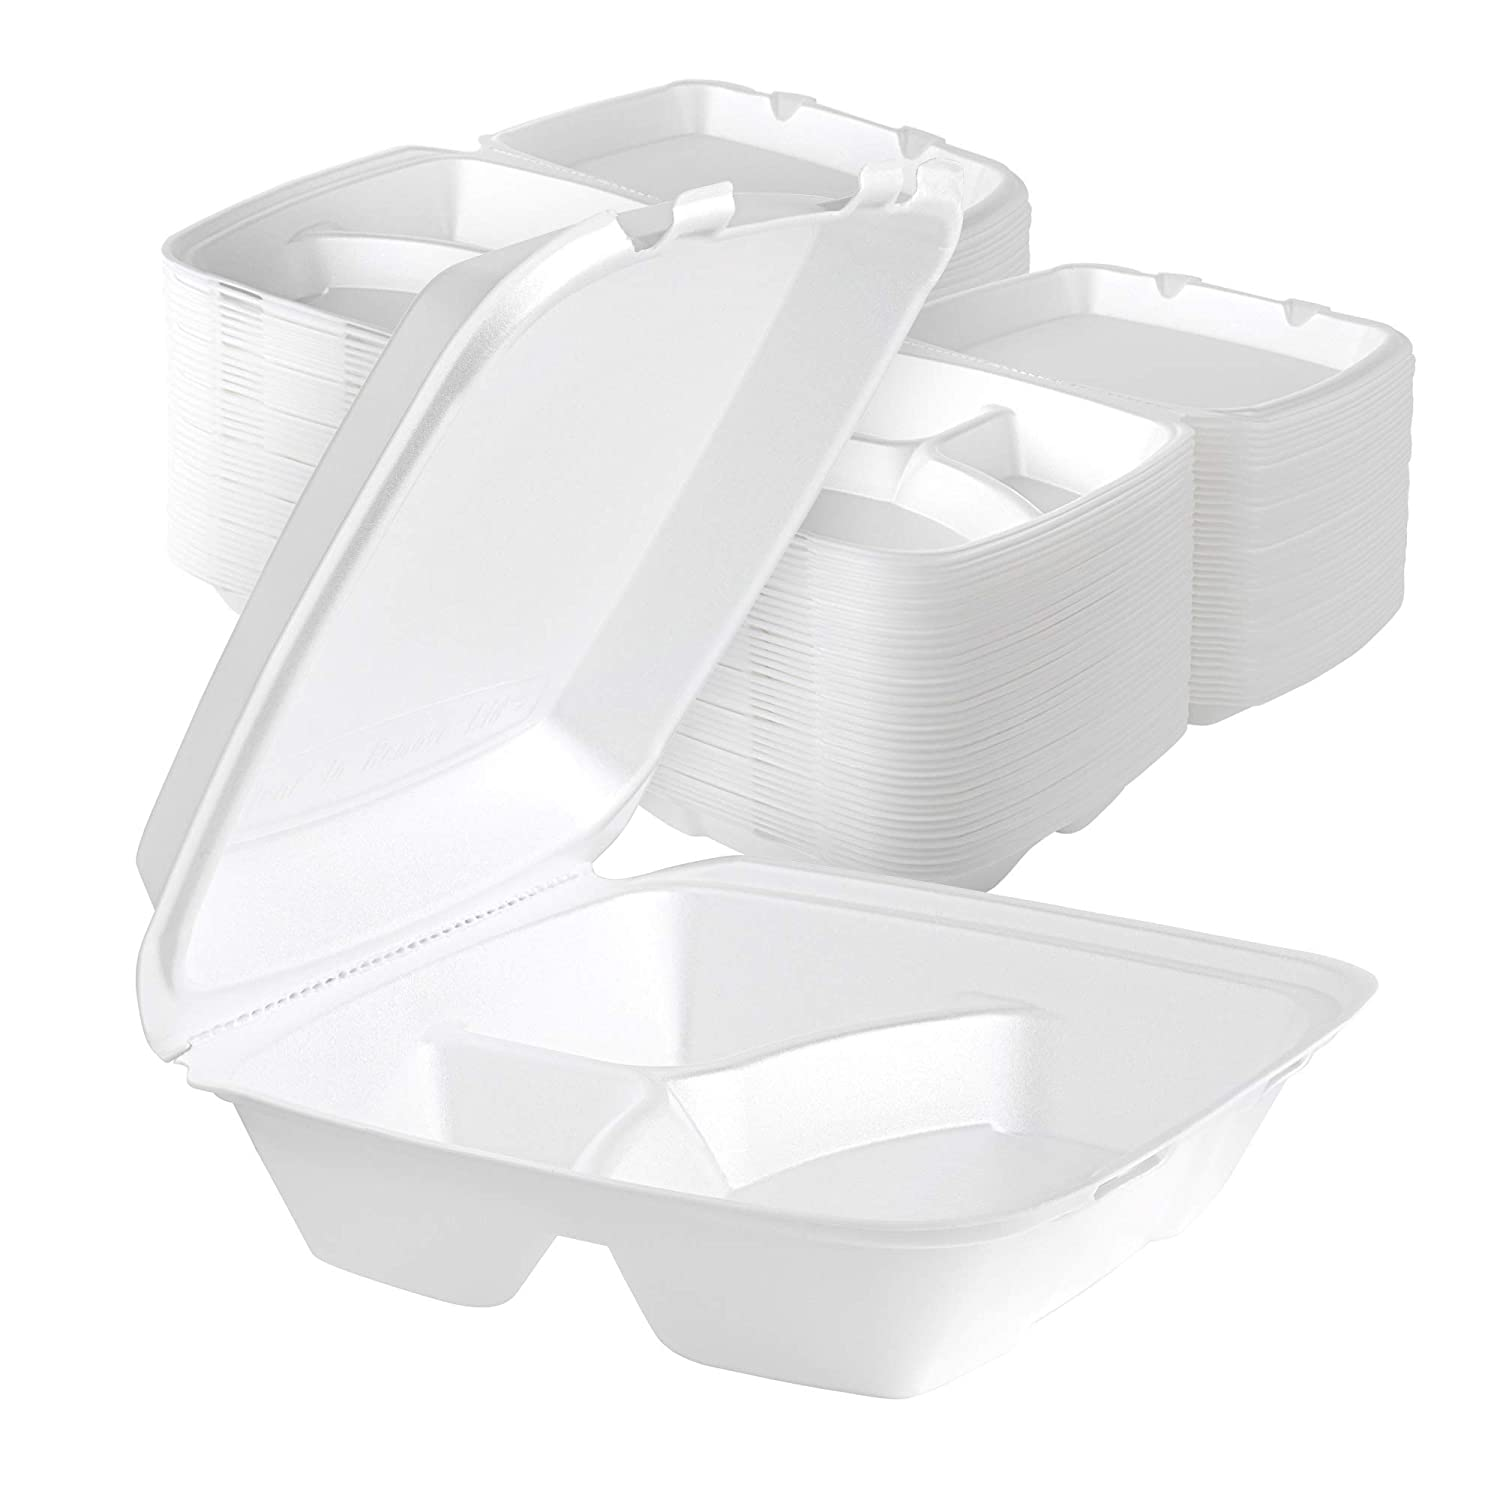 Stock Your Home 9 Inch Clamshell Styrofoam Containers (25 Count) - 3 Compartment Food Containers - Large Carry Out Container for Food - Clamshell Take Out Containers for Delivery, Takeout, Restaurants